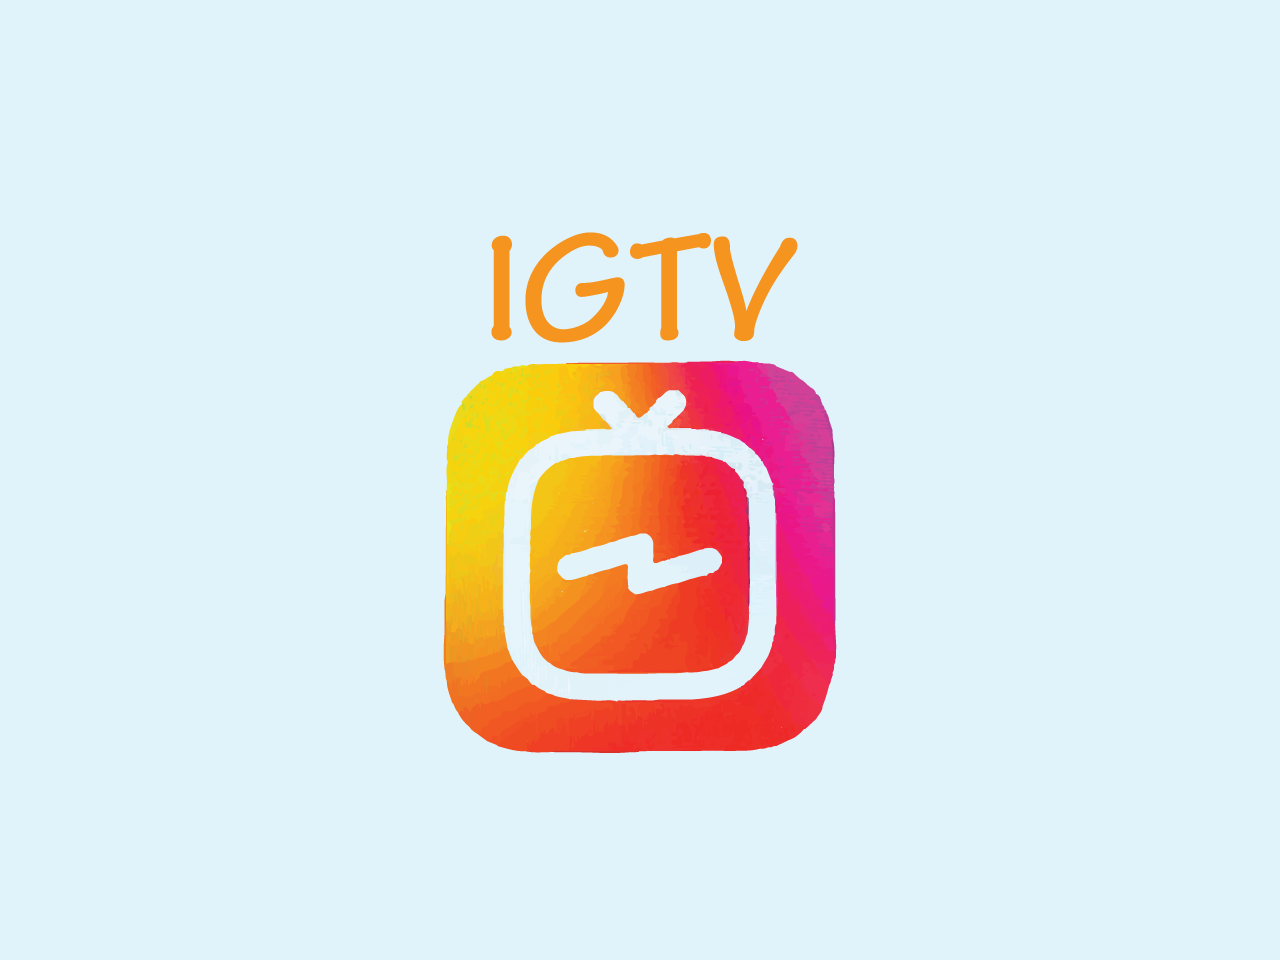 Instagram launches IGTV for watching and uploading long duration videos